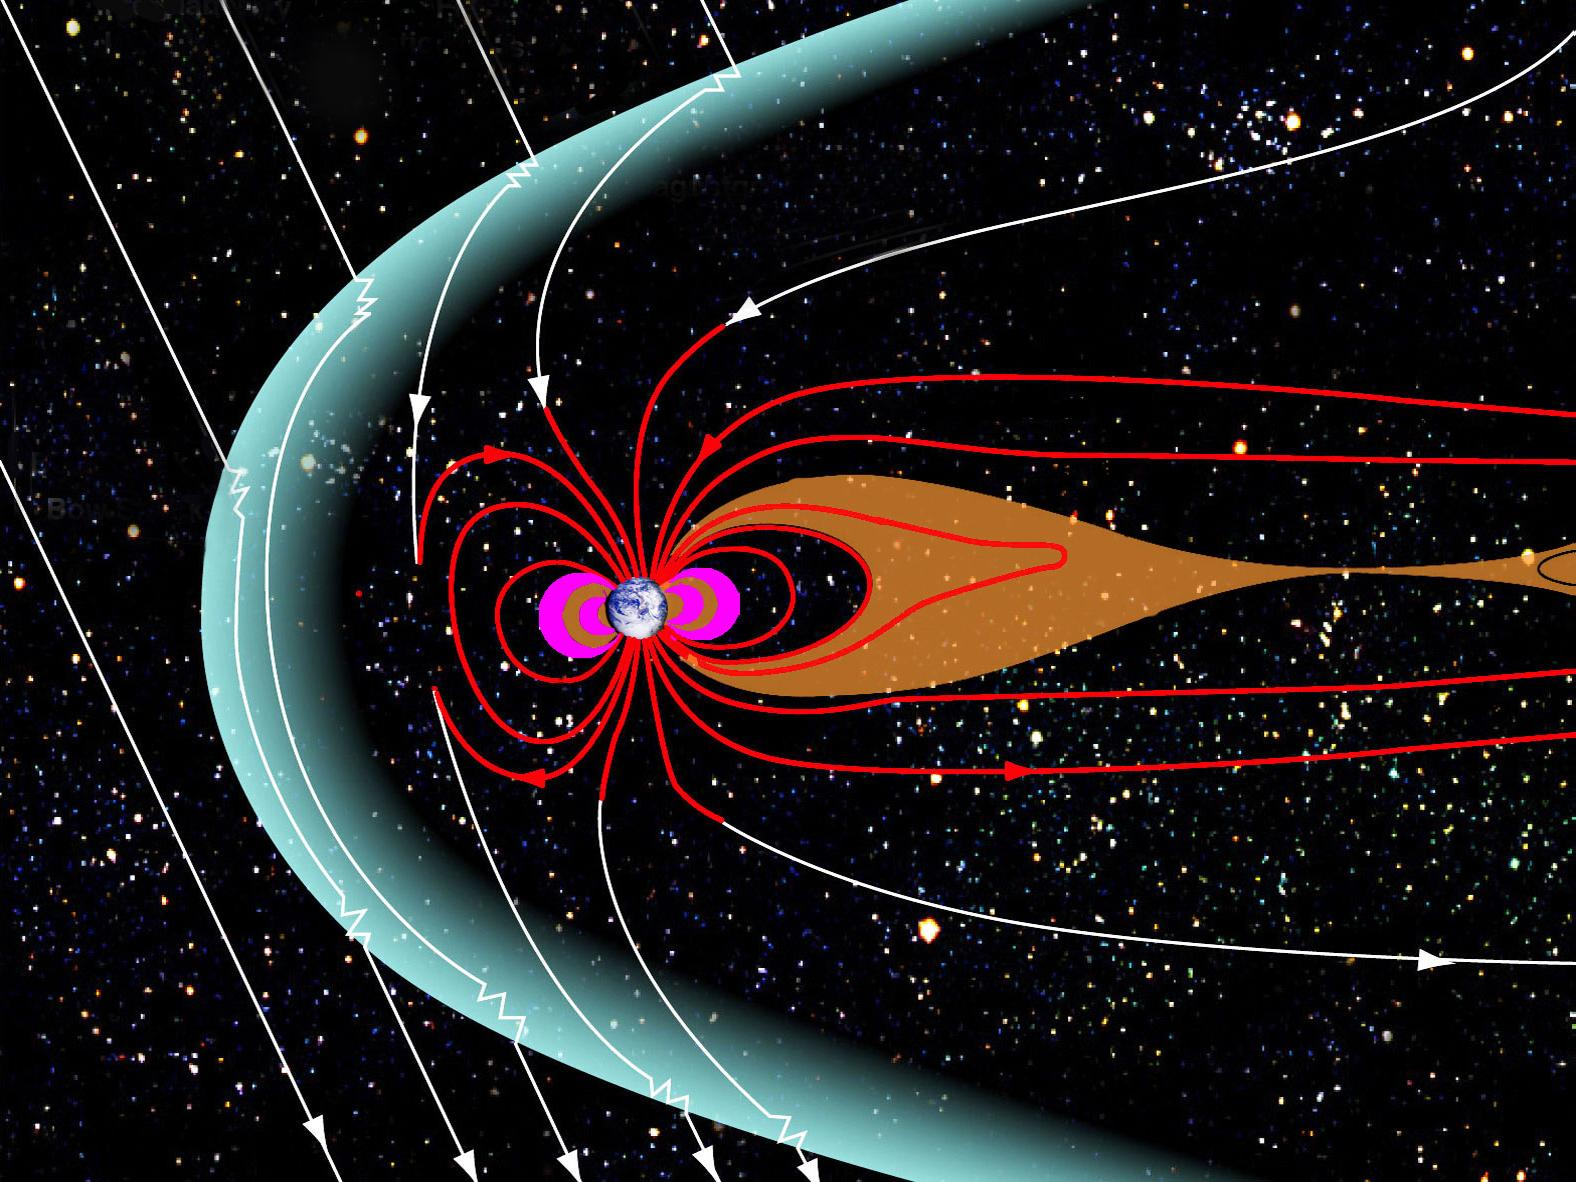 Earth's magnetosphere protects the planet from high energy photons from our sun and foreign stars